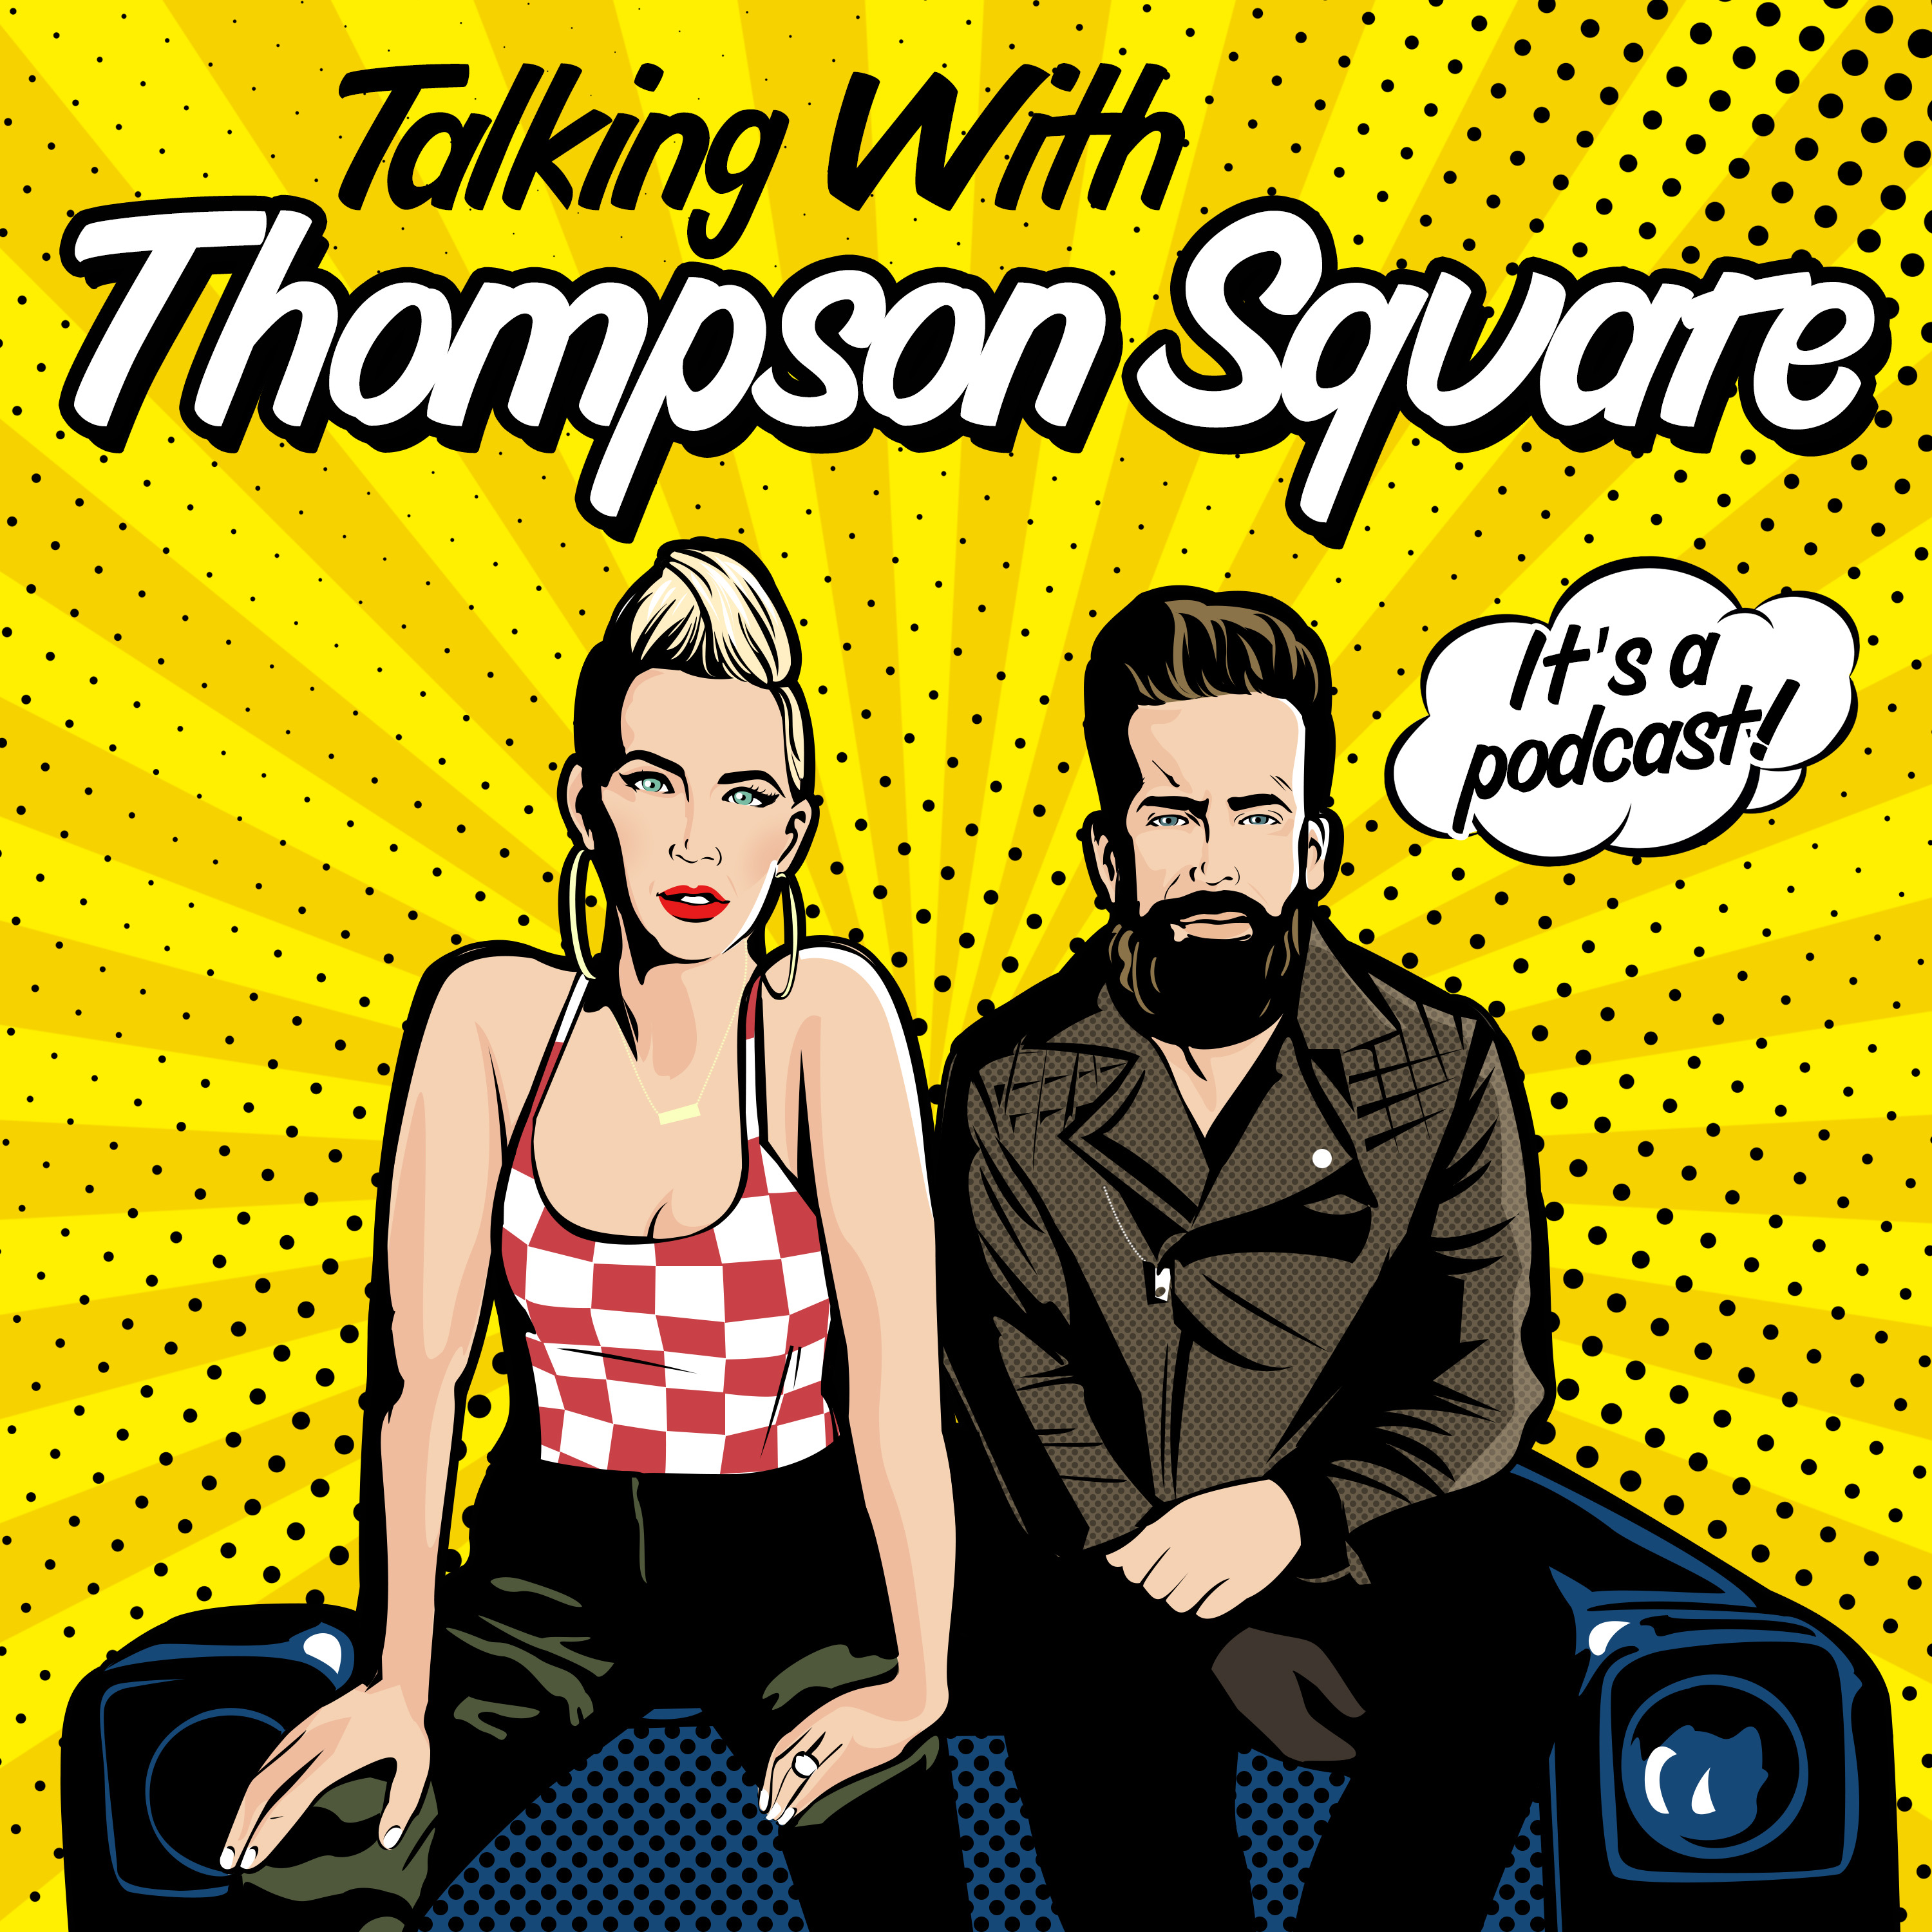 Talking with Thompson Square - It's a Podcast